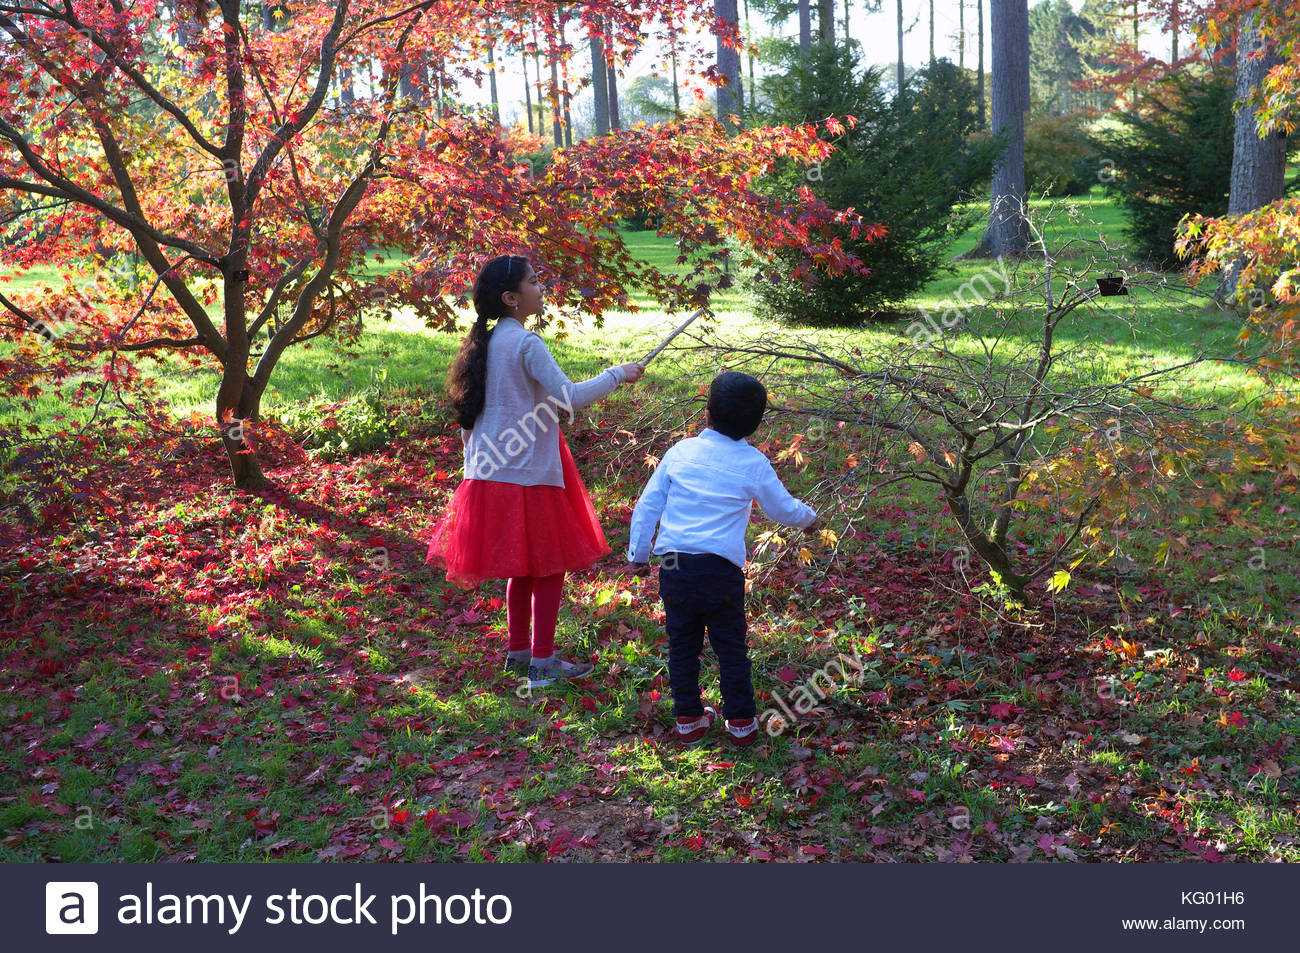 Children play and look at nature in The National Aboretum in Westonbirt in Gloucestershire, UK. - Stock Image